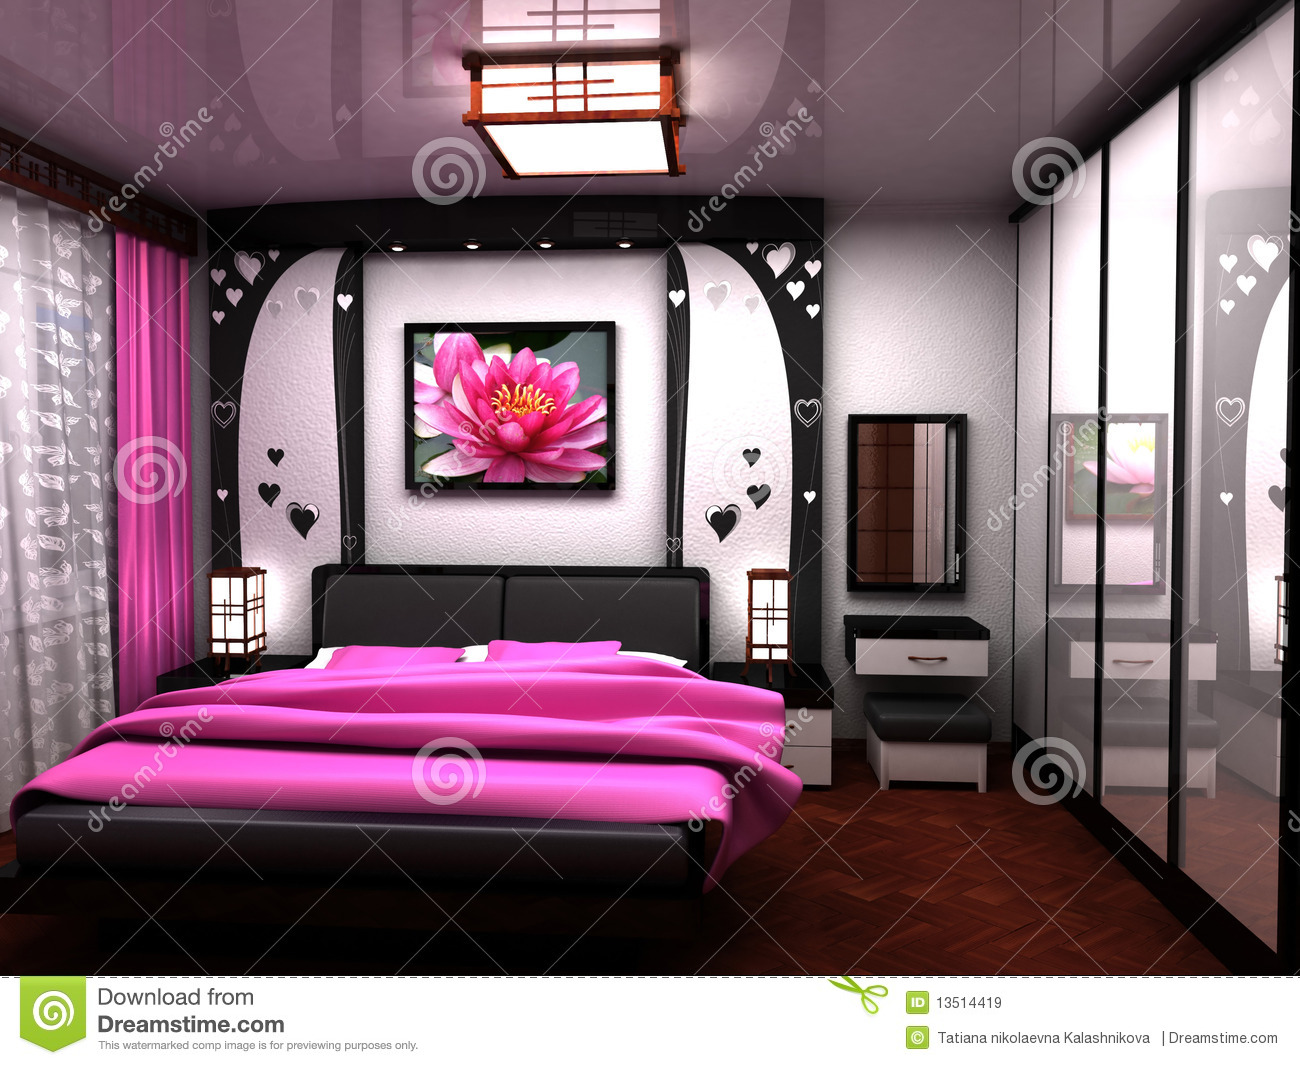 Bedroom a beautiful interior of a room royalty free for Beautiful bedroom interior